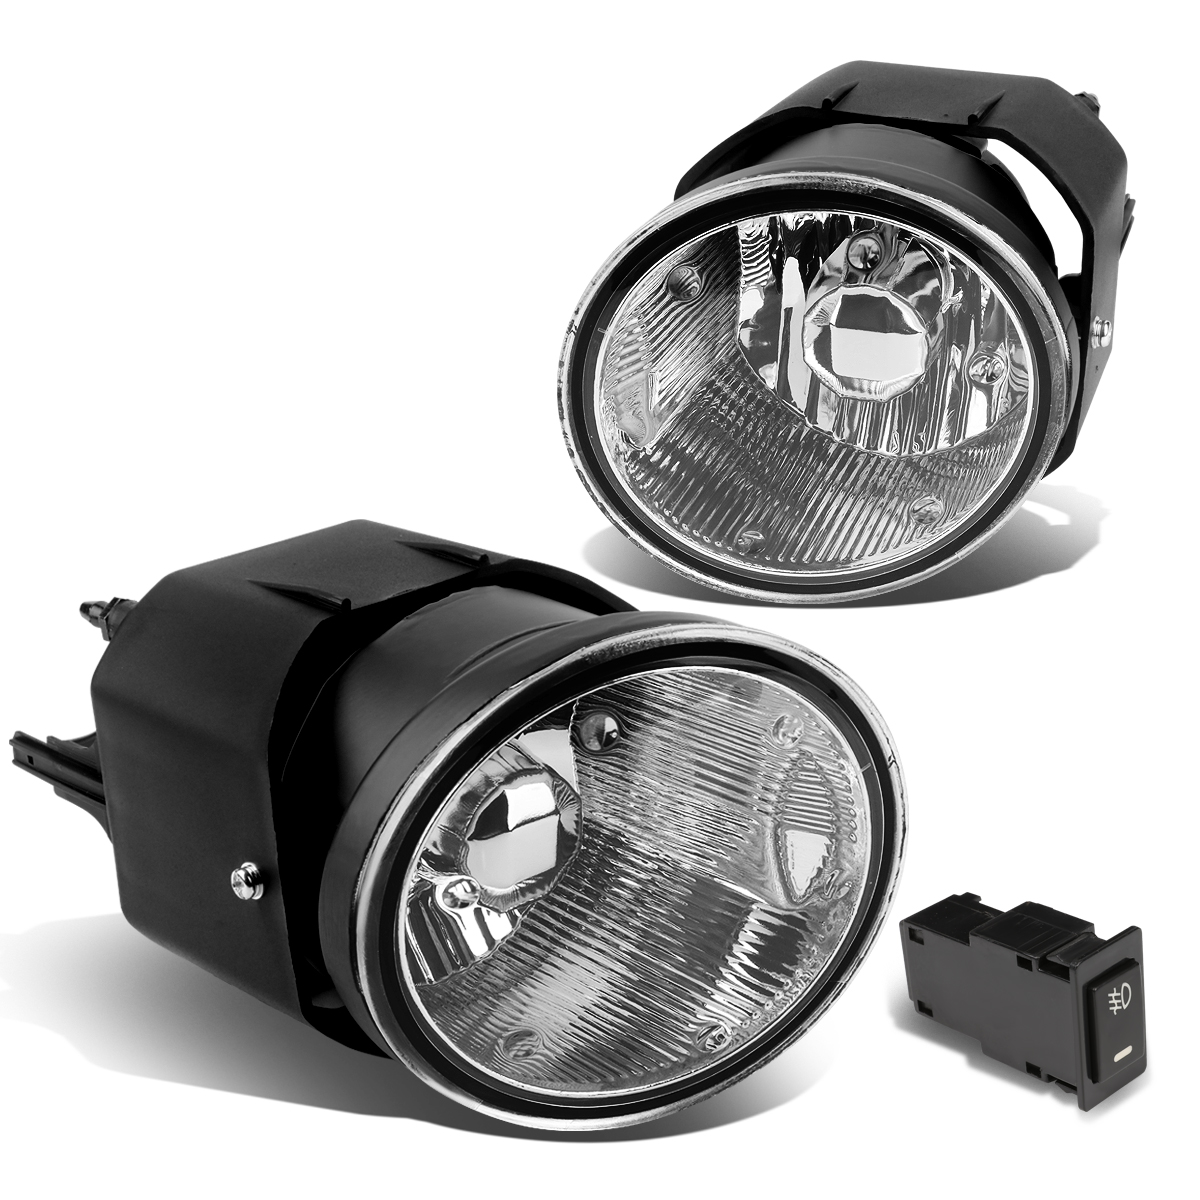 For 00-04 Nissan Maxima/Sentra/Frontier/Xterra Pair Bumper Driving Fog Light/Lamp+Switch Clear Lens 01 02 03